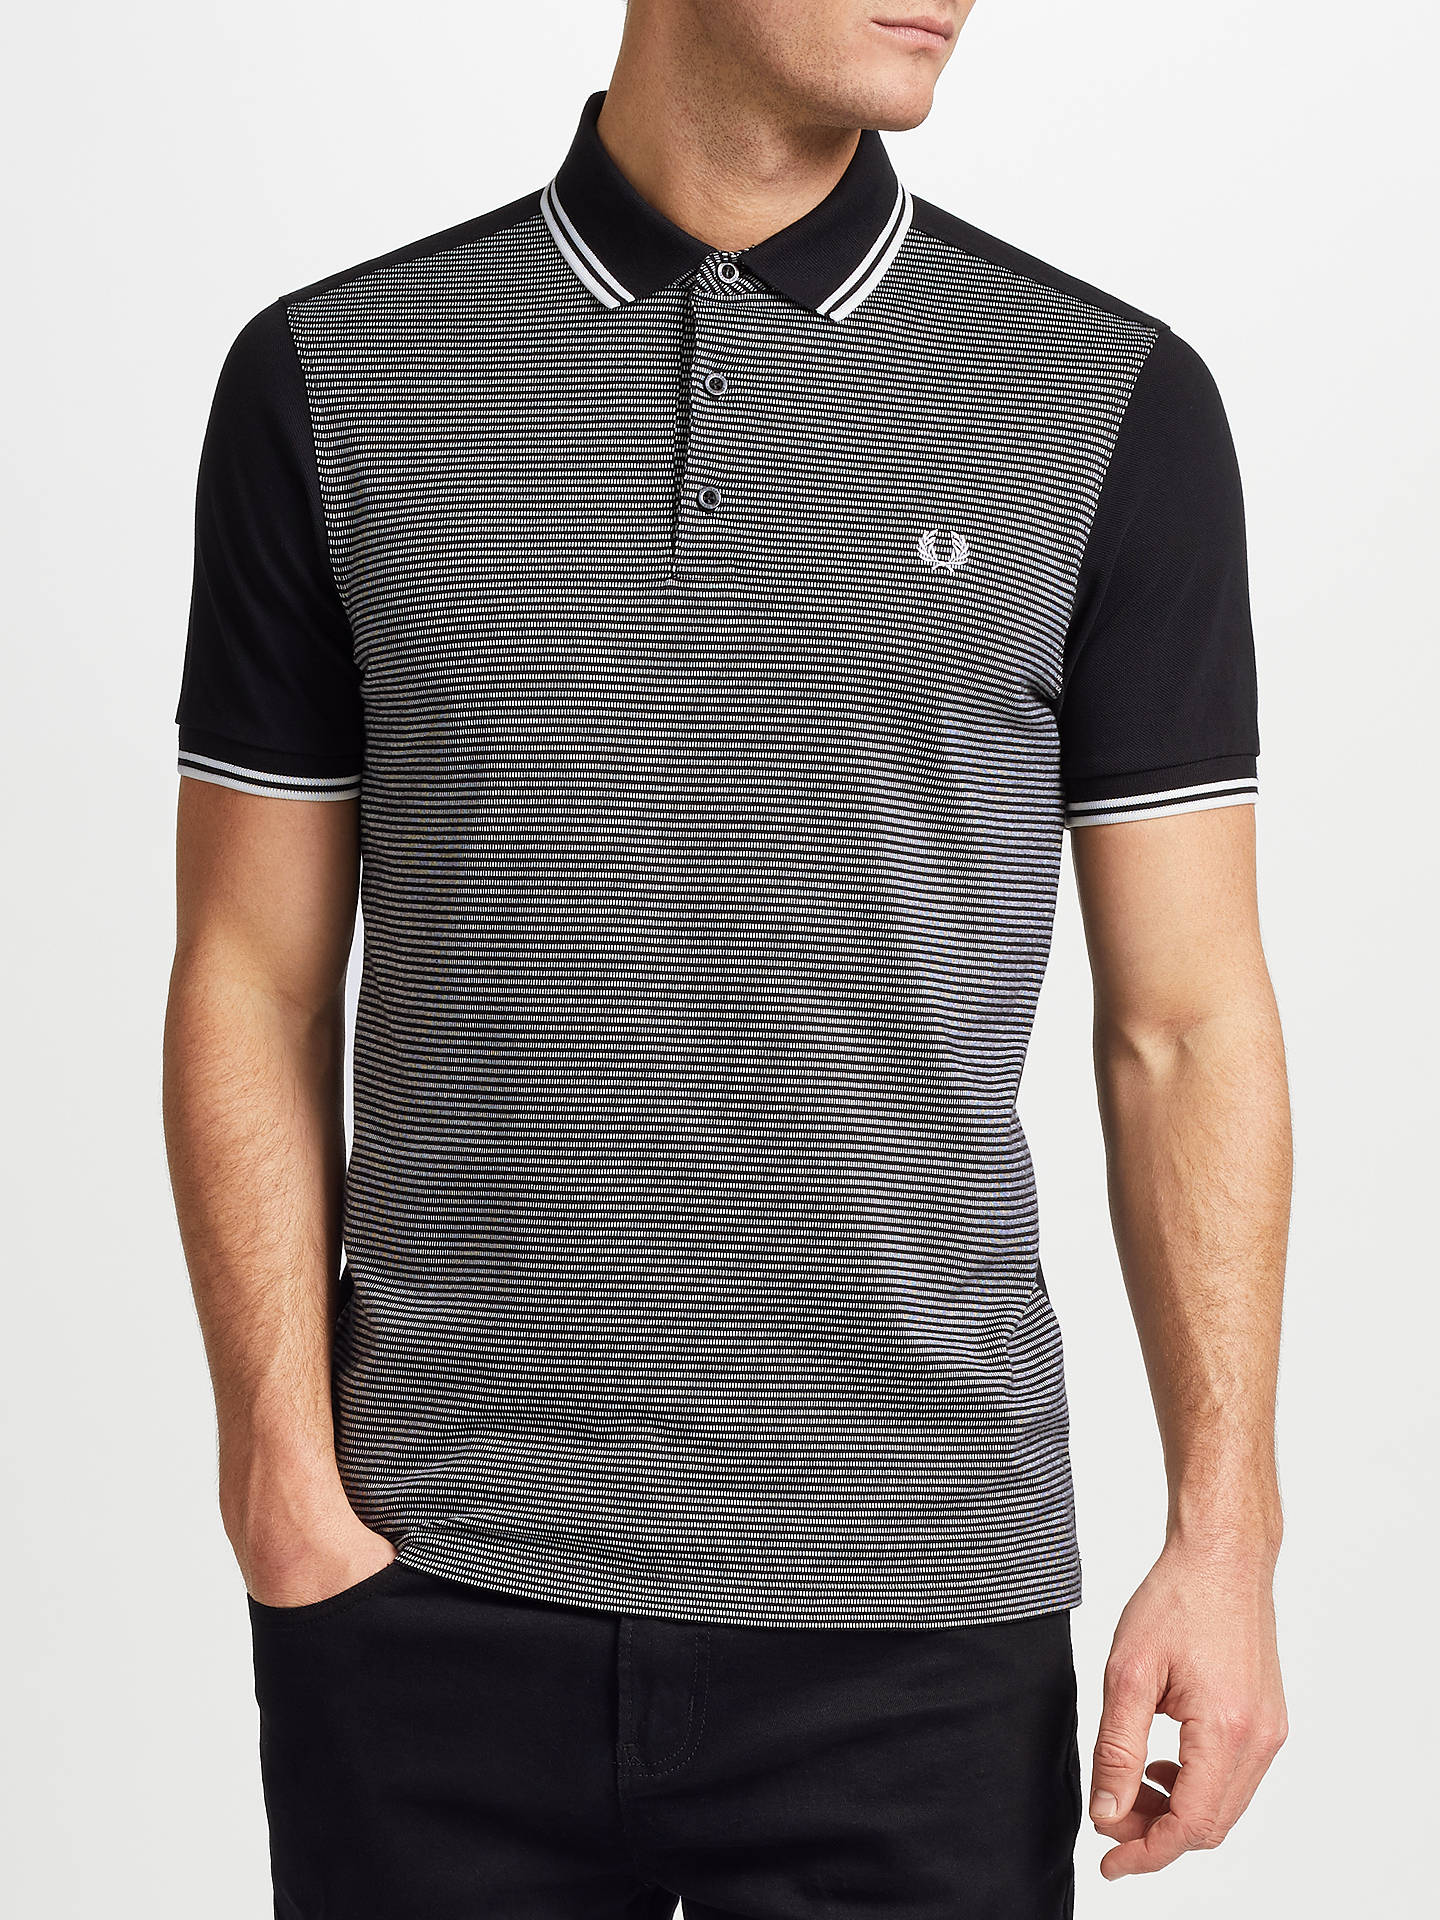 BuyFred Perry Jacquard Panel Polo Shirt, Black, S Online at johnlewis.com